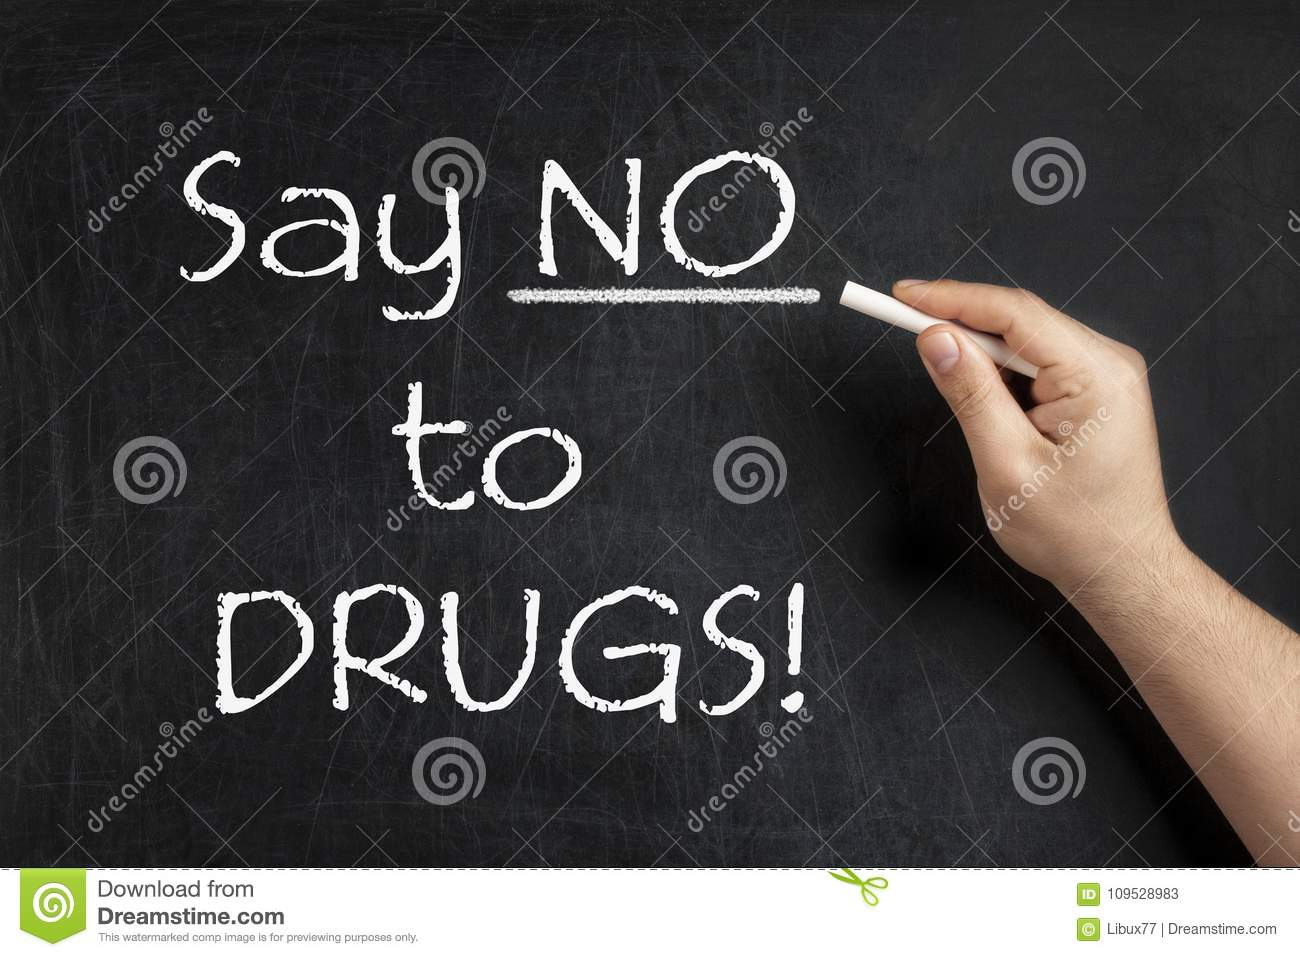 Say no to DRUGS teacher blackboard chalkboard